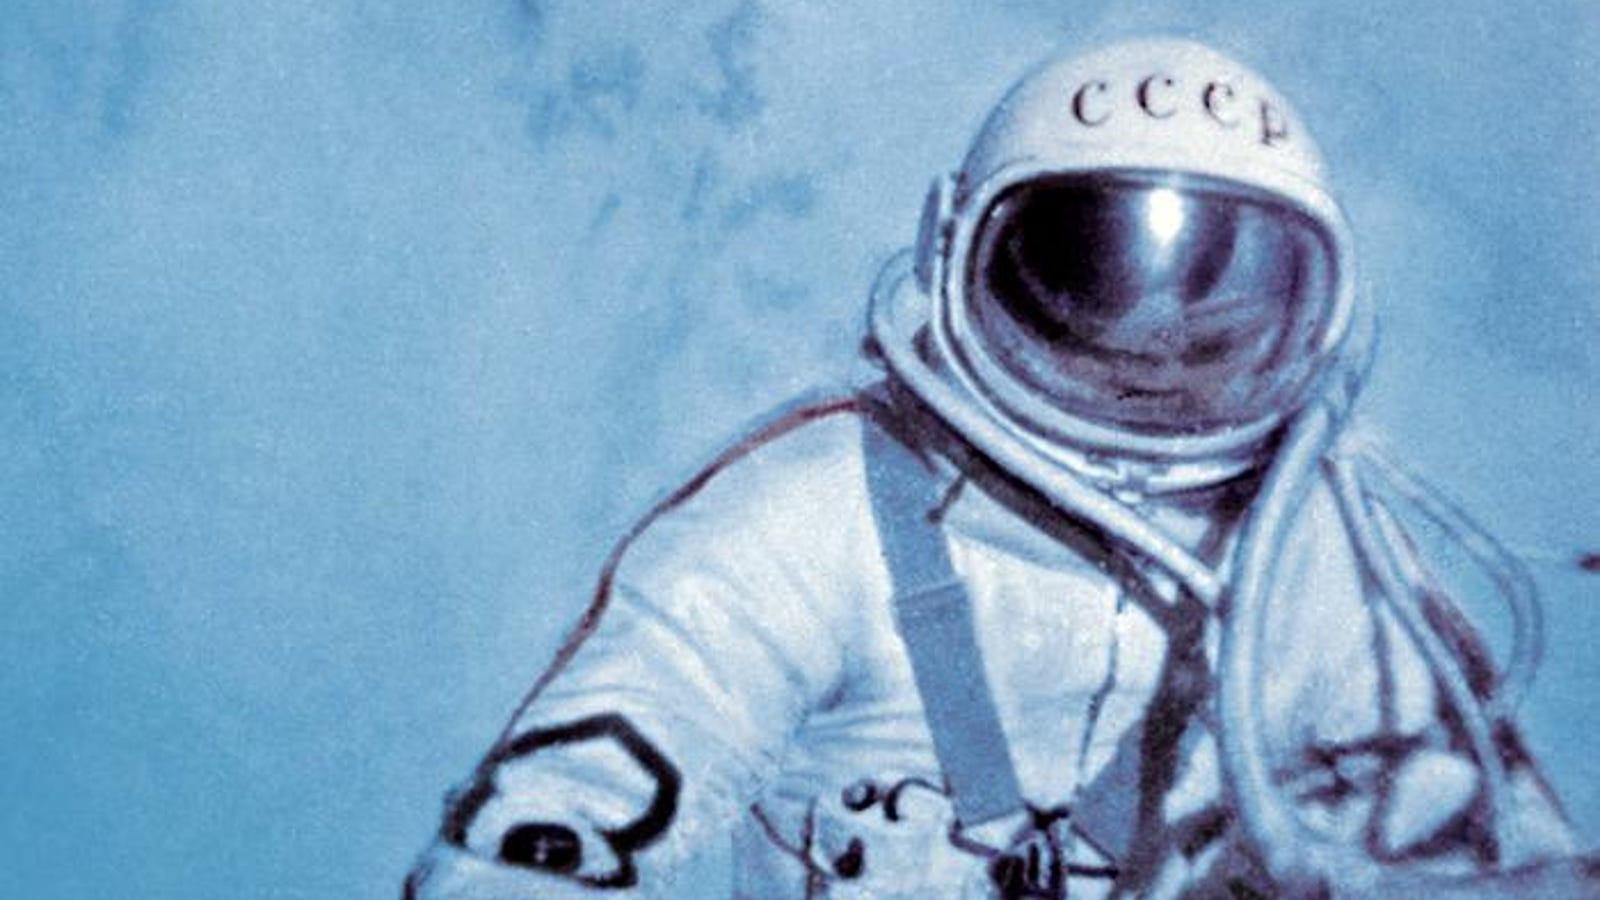 50 Years Ago, The First Spacewalk Nearly Ended In Tragedy